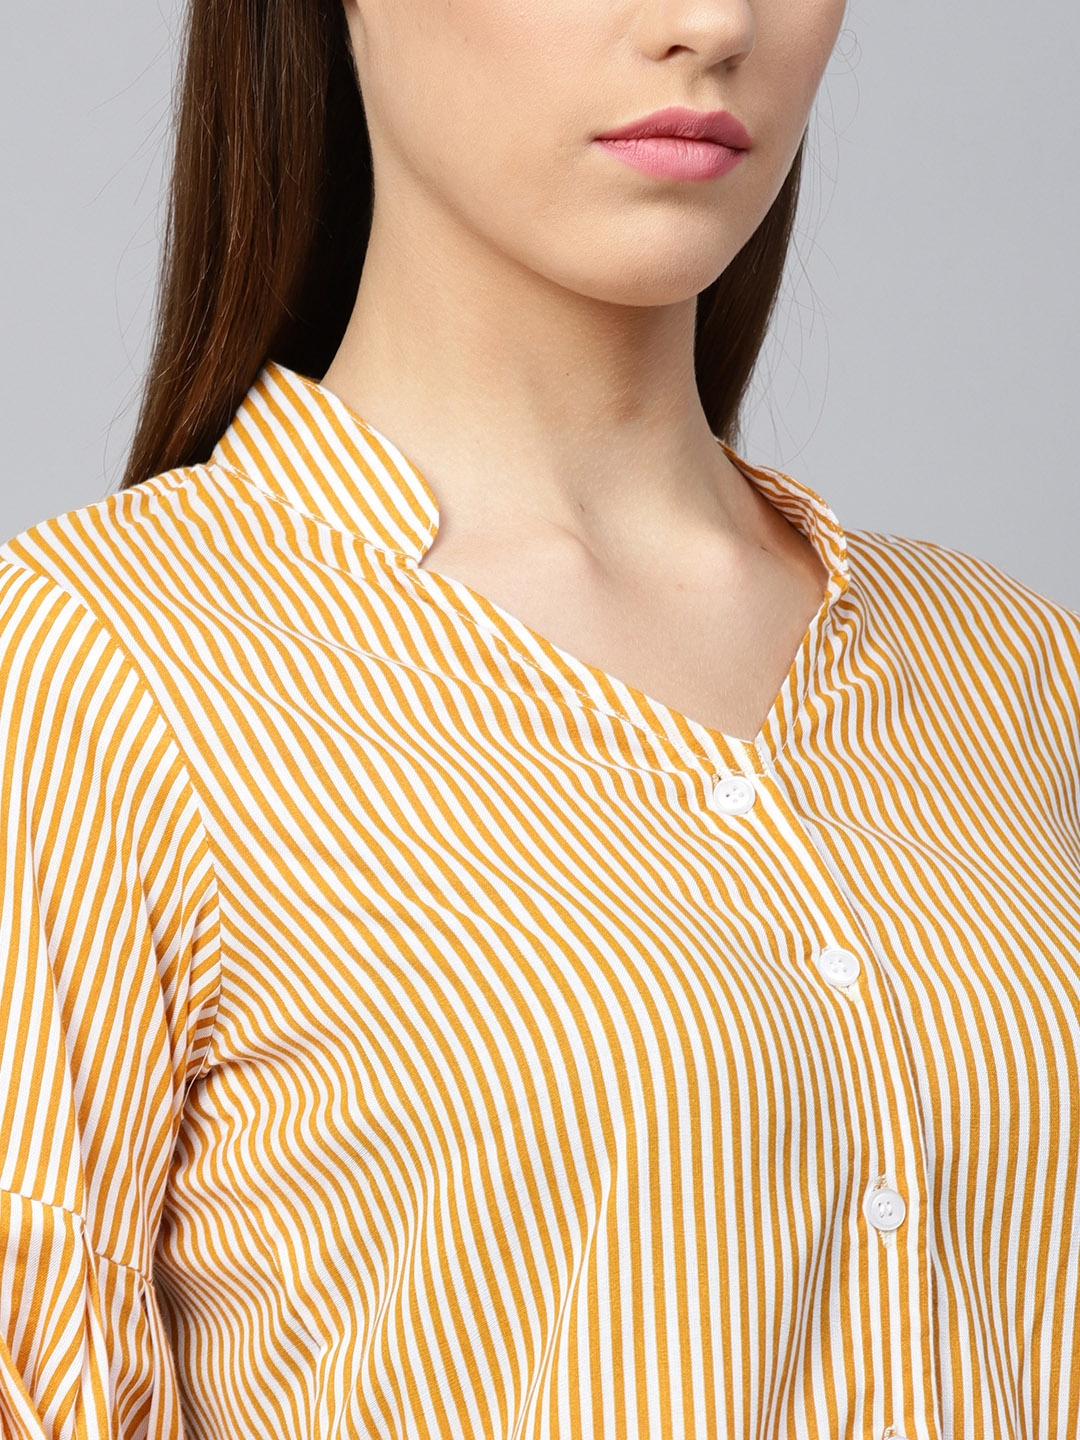 fca5ae460cef0 Buy Athena Women Mustard Yellow   Off White Striped Shirt Style Top ...